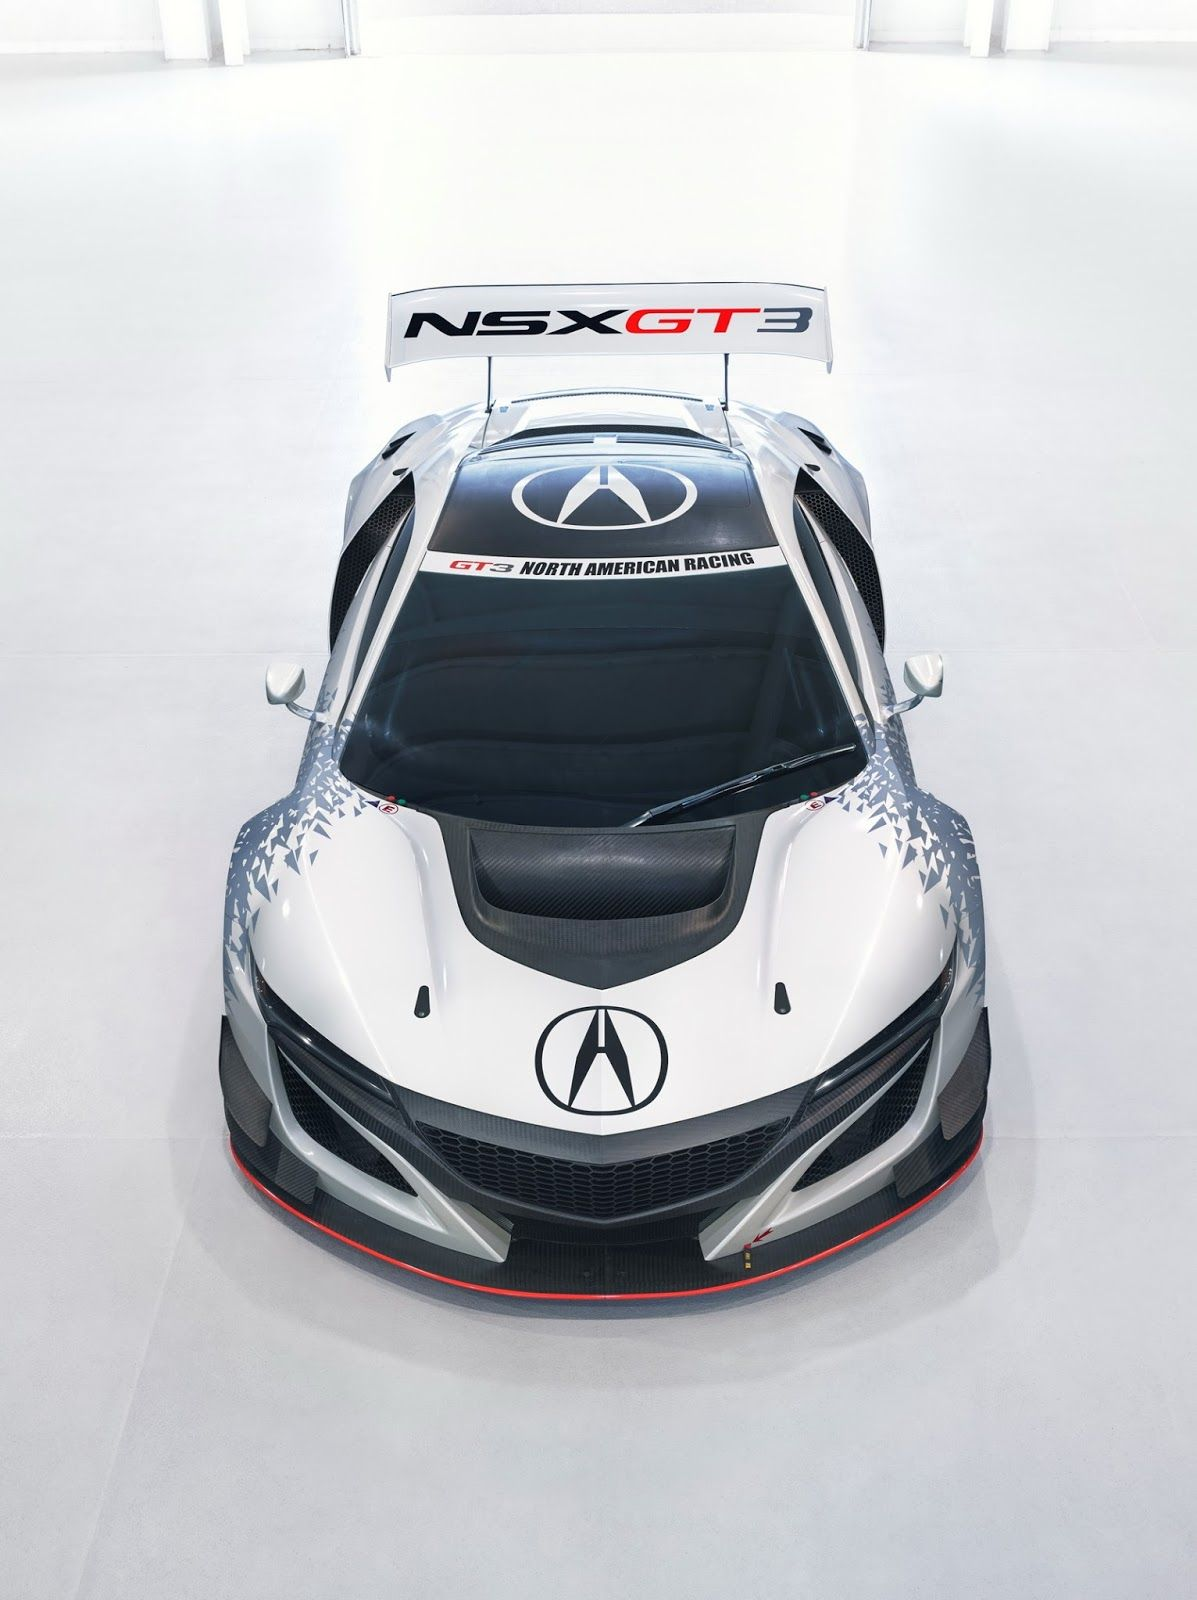 2018 acura nsx gt3 race car redesign and price http www